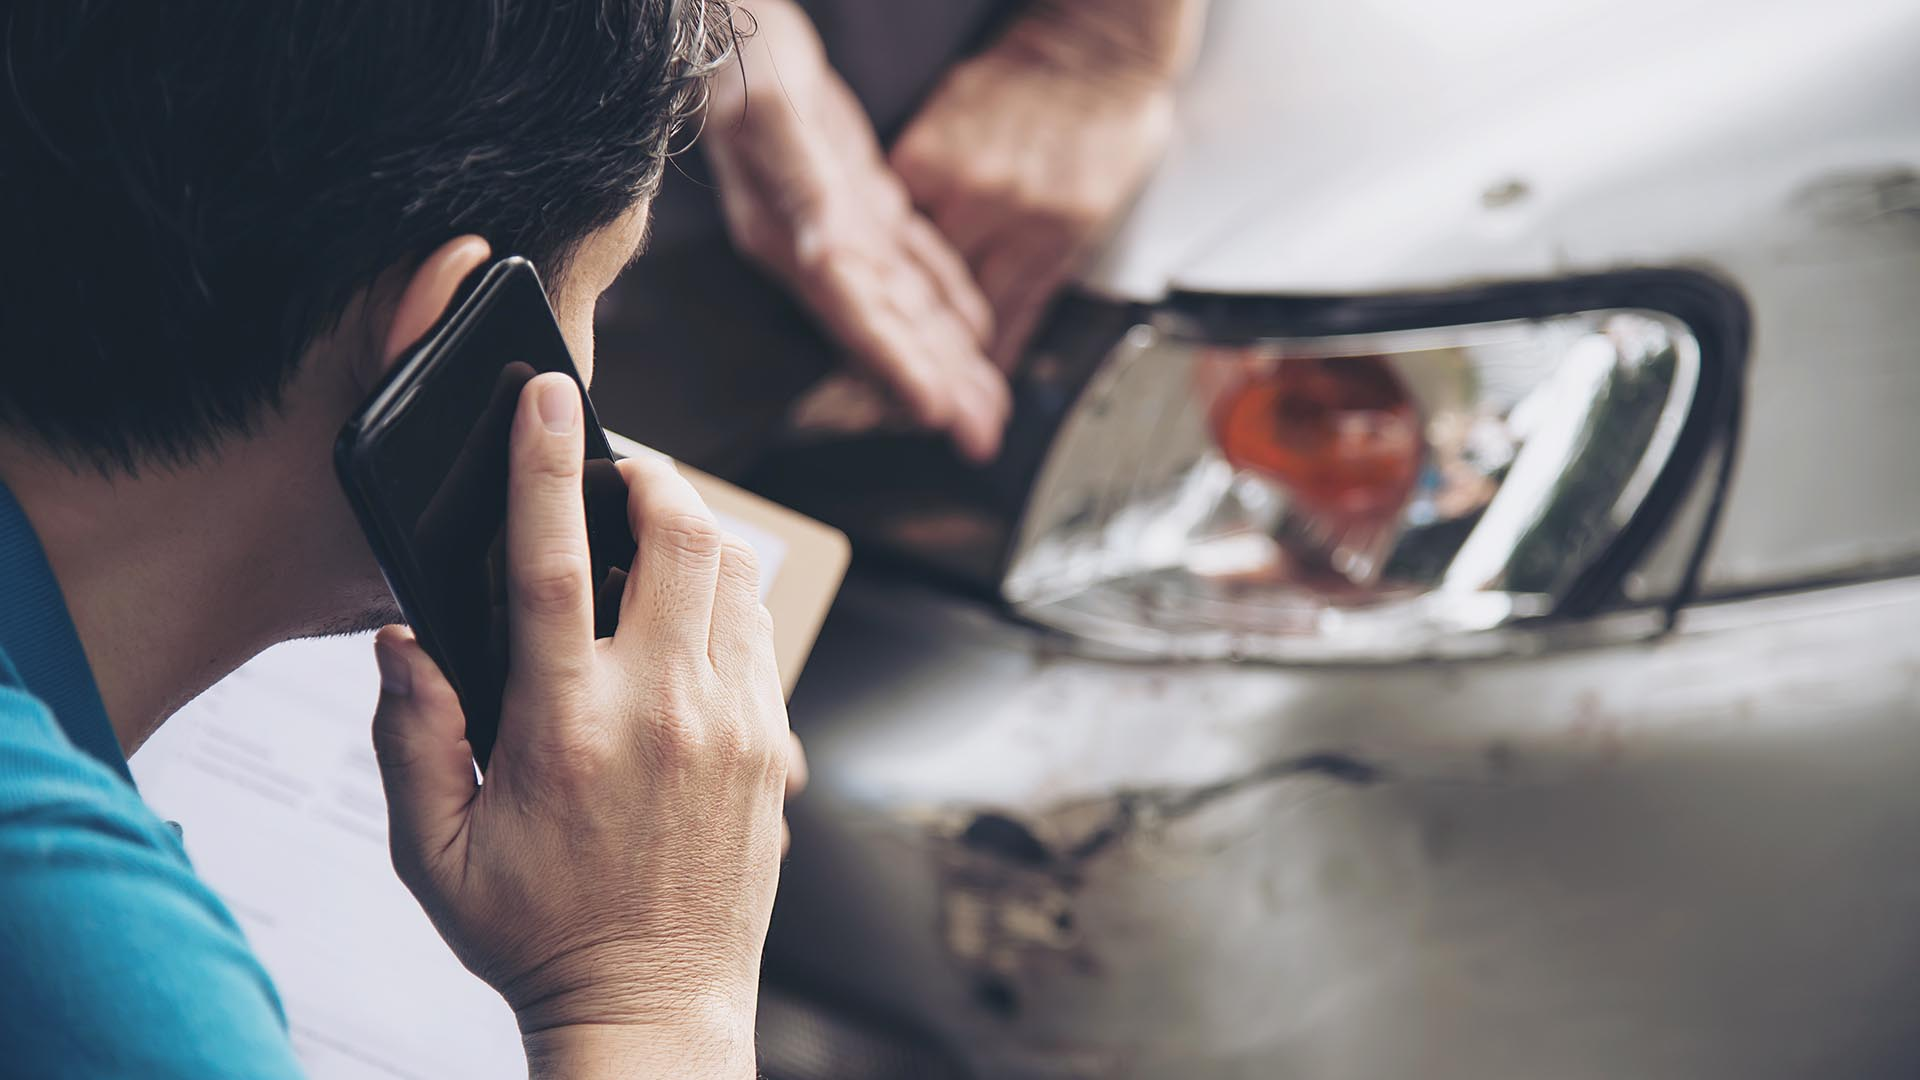 person talking on a cell phone while looking at a damaged vehicle headlight